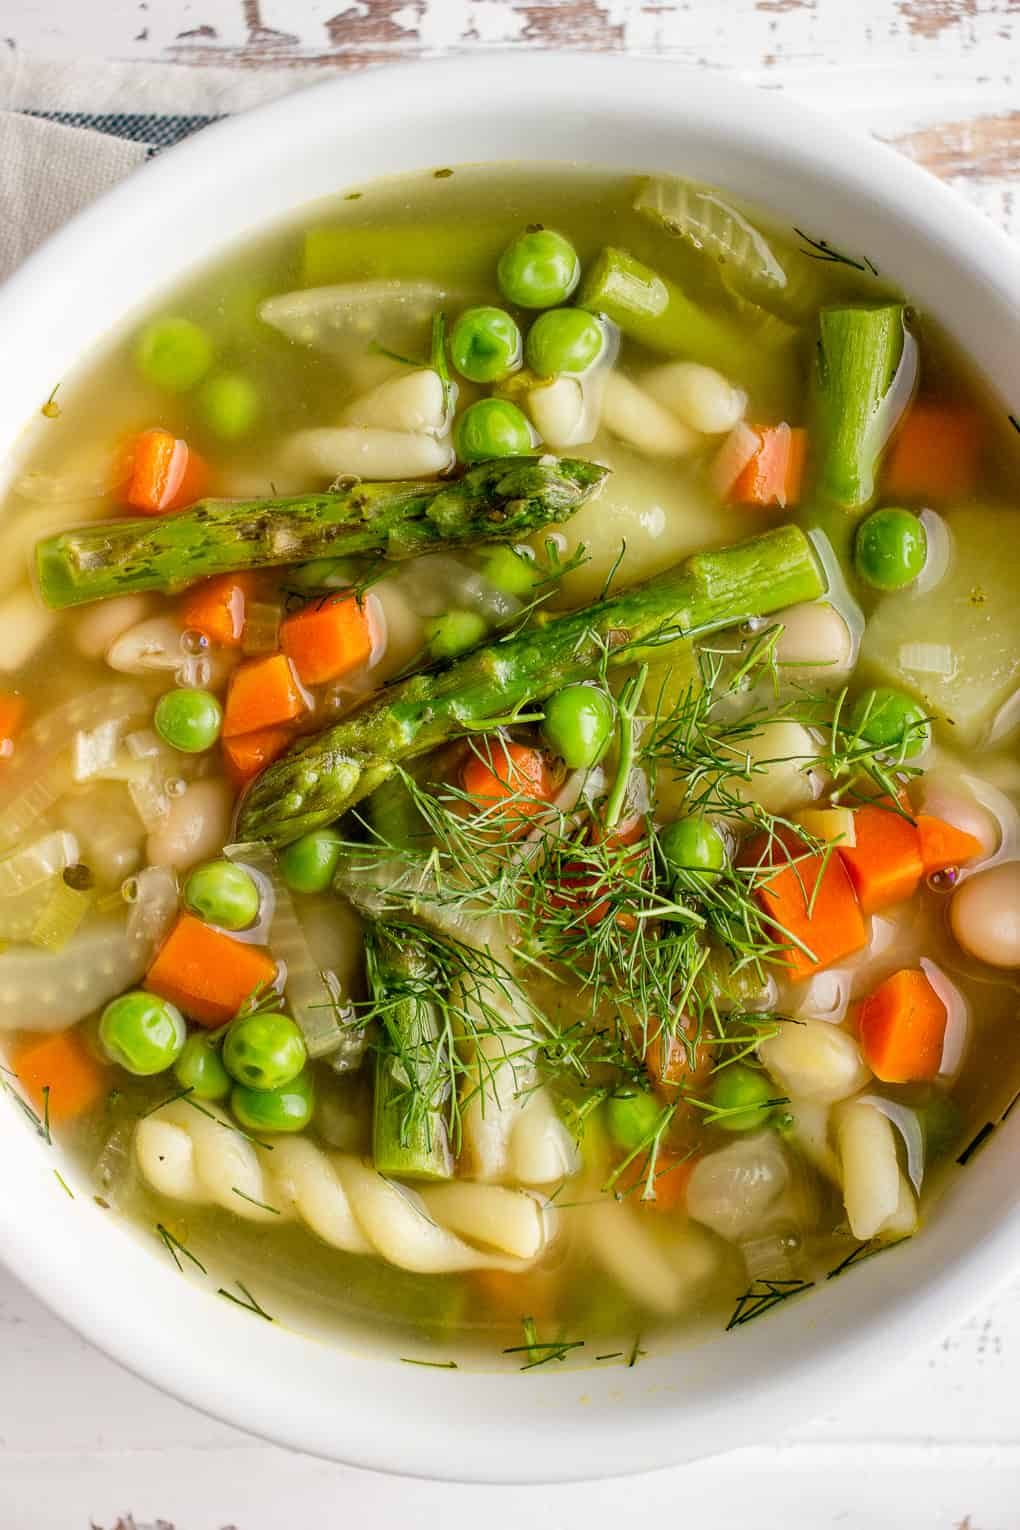 Spring Soup with asparagus, green peas and pasta